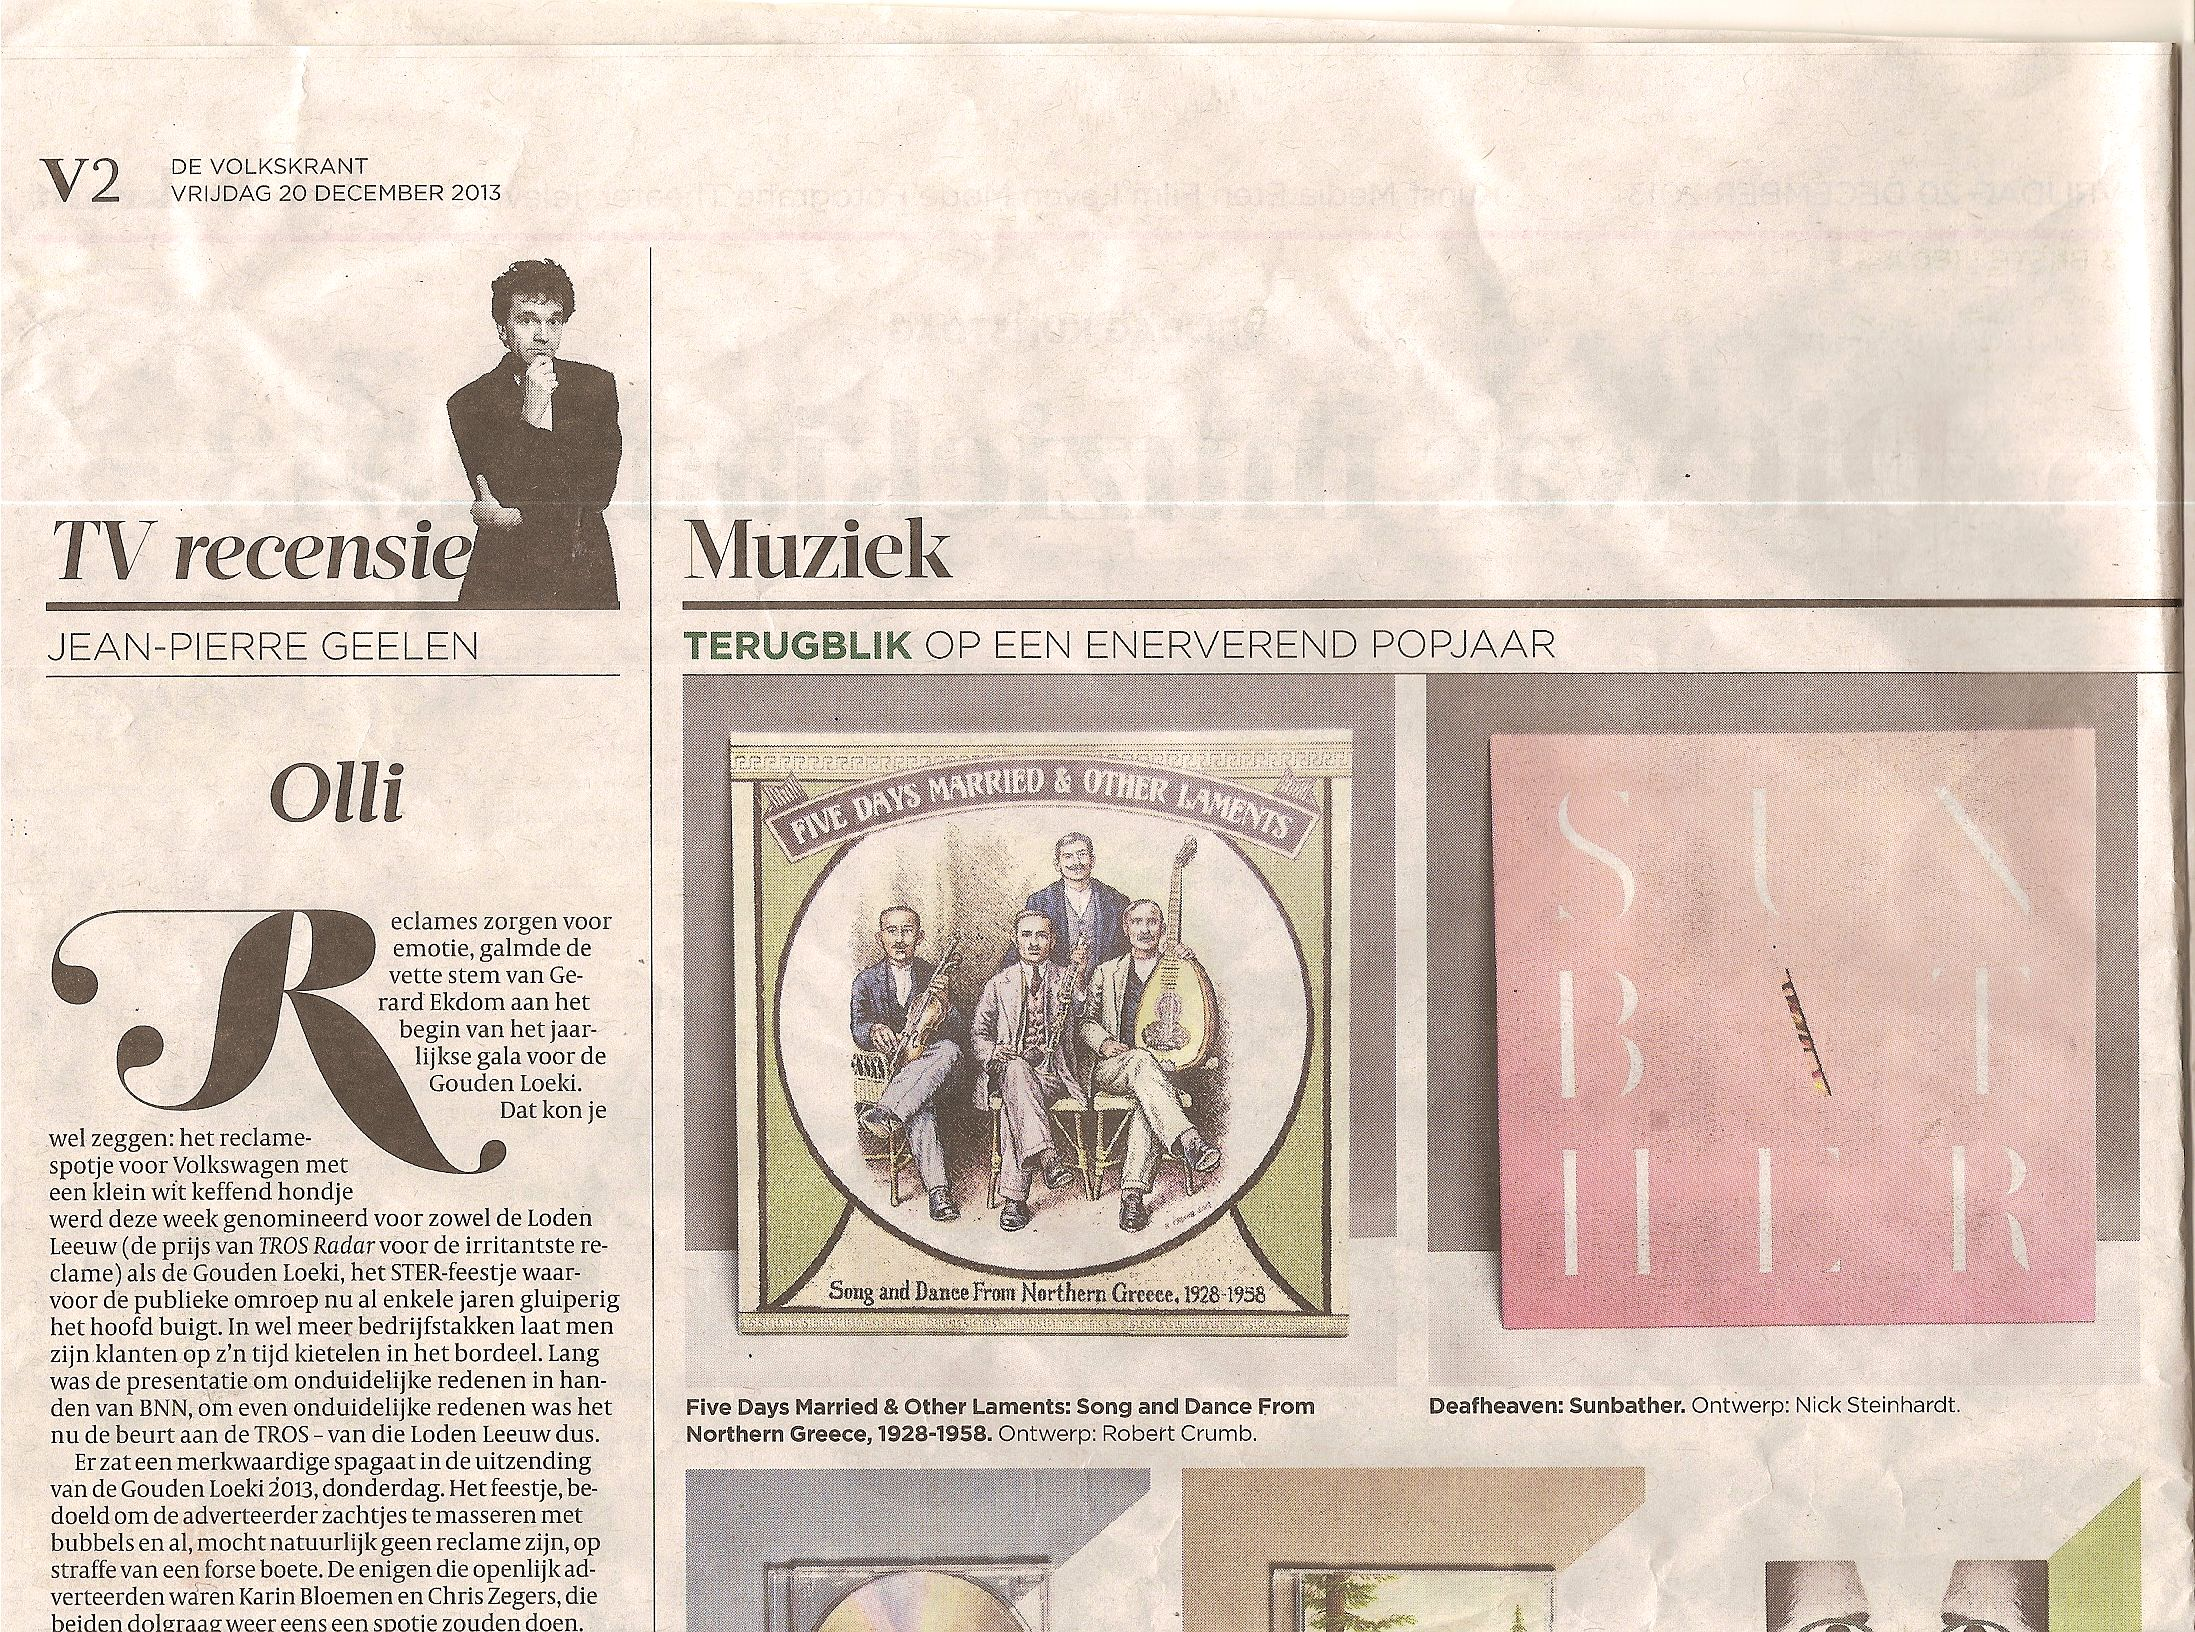 De Volkskrant (Netherlands) Chooses Five Days Married & Other Laments as the Most Beautiful Record Cover of 2013